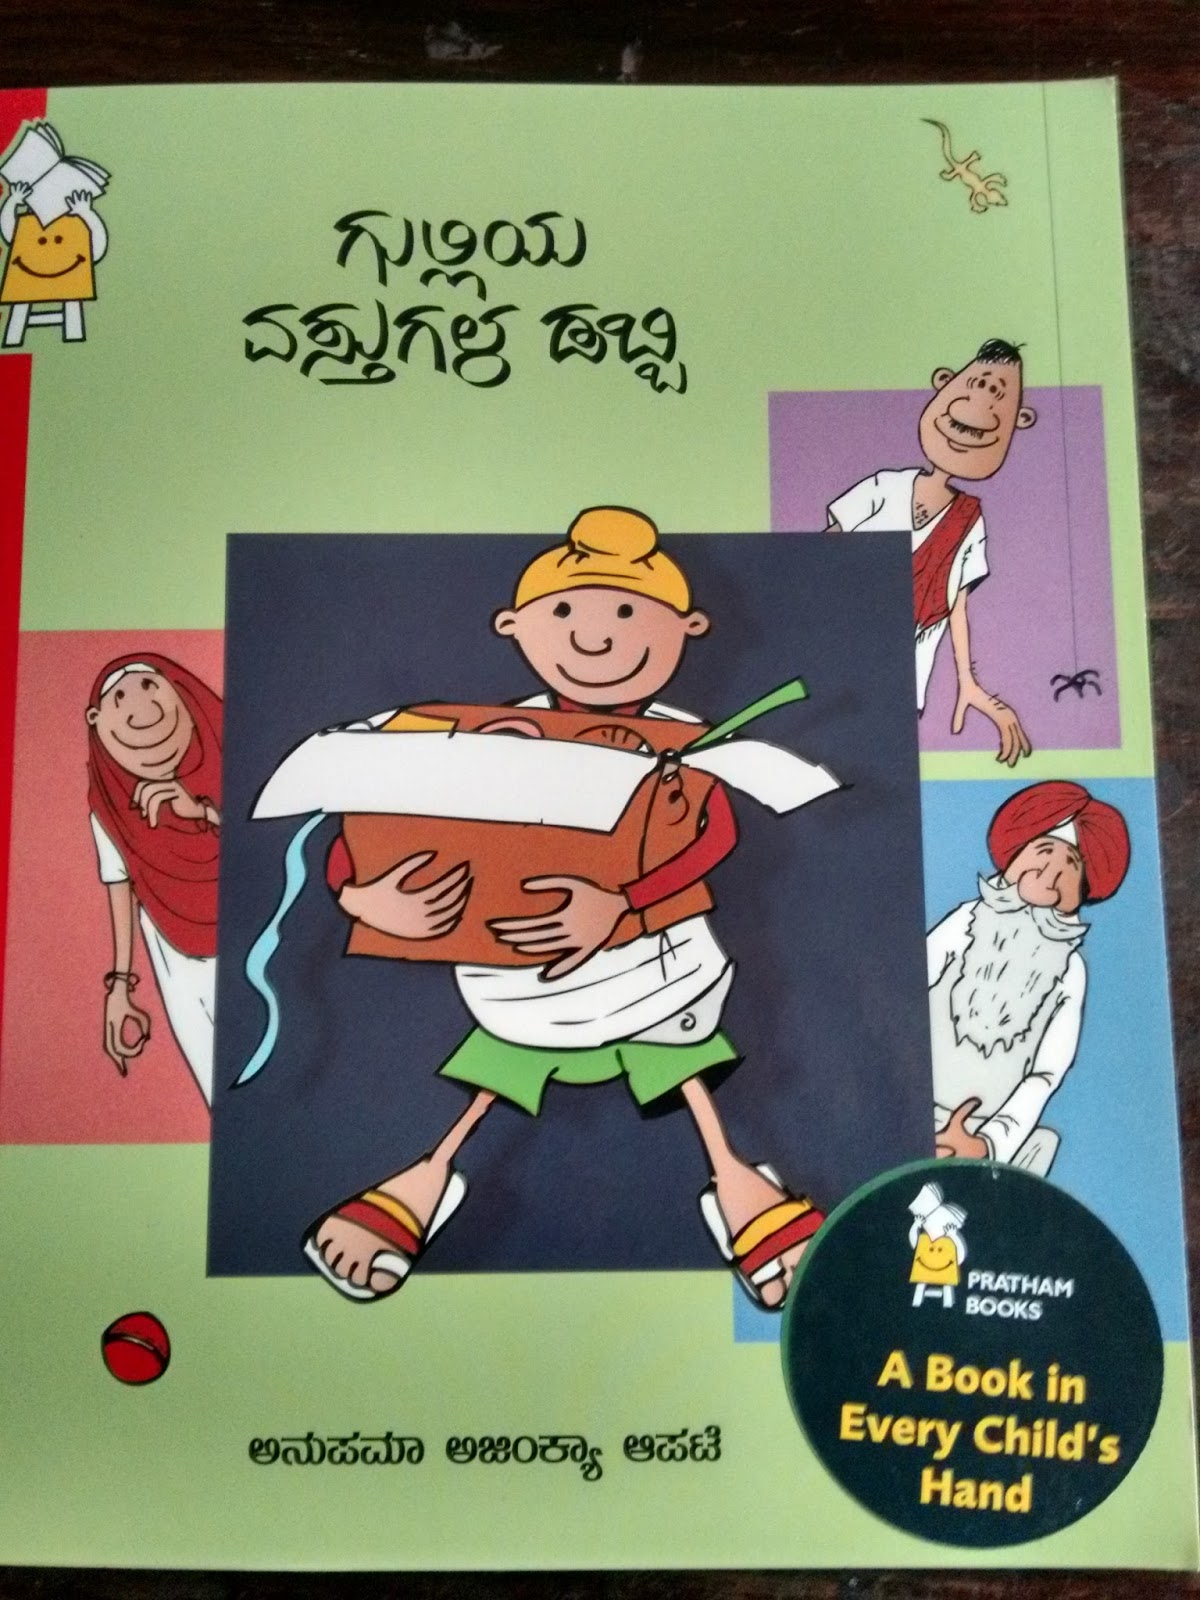 Calling Kannada and Telugu Copy Editors - Pratham Books